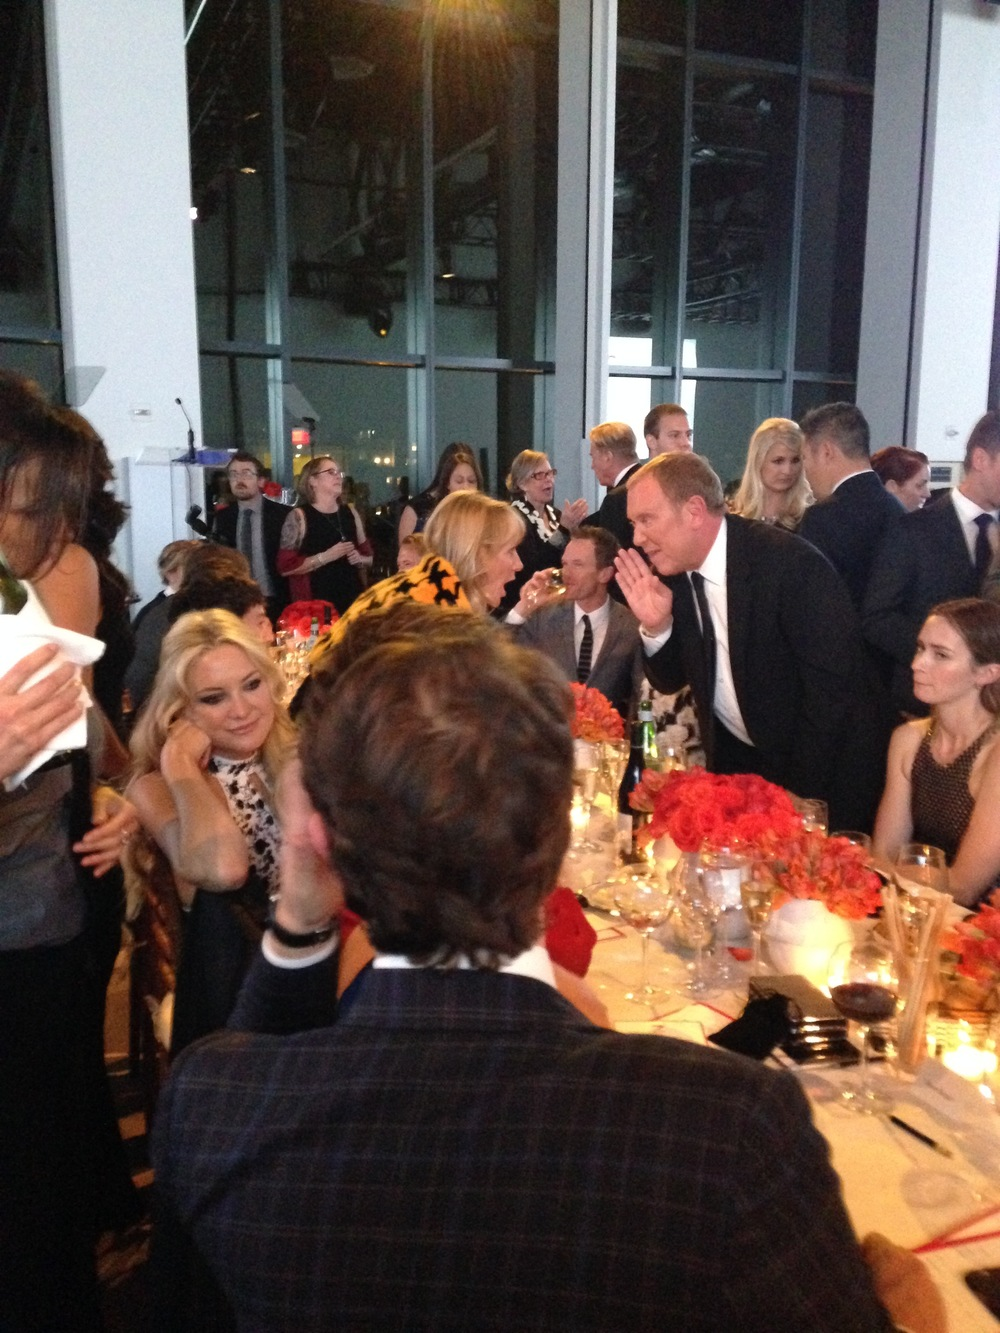 Kate Hudson casually chatting with someone as Emily Blunt looks on. NPH drinking his glass of wine, as Michael Kors chats up with a guest.